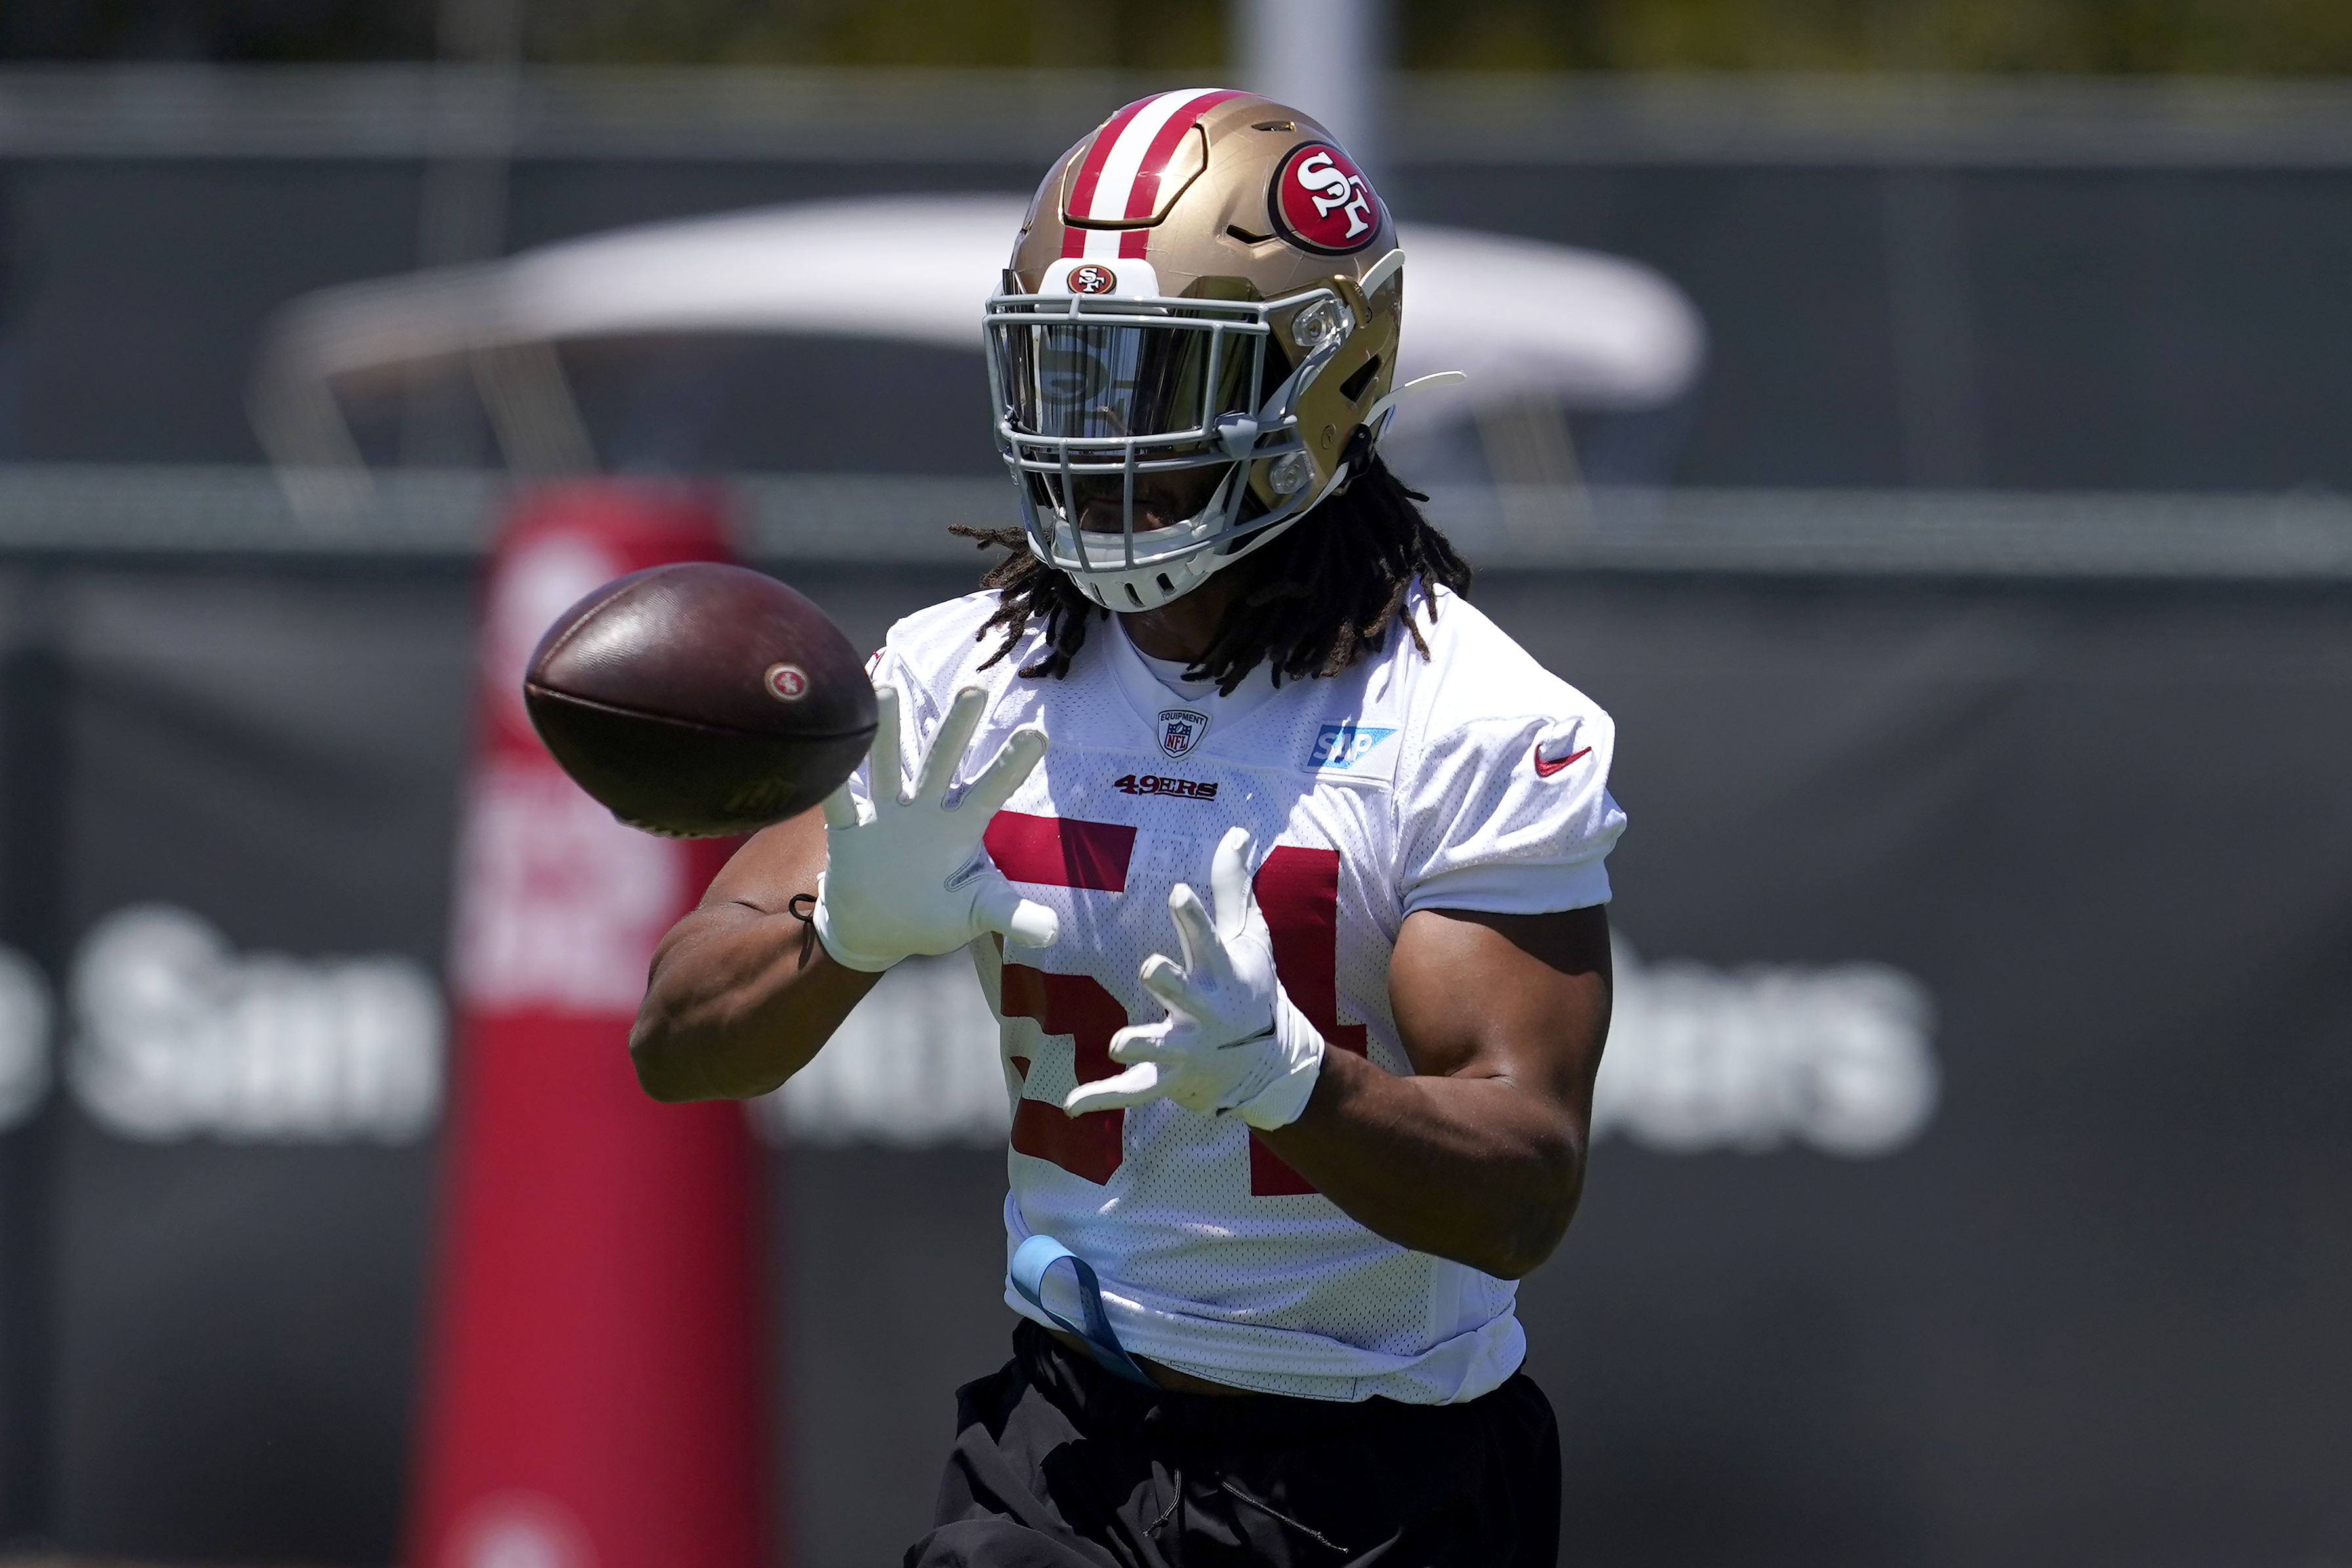 Pro Football Focus rates San Francisco 49ers linebacker Warner, the former BYU star, the best NFL player under the age of 25 heading into the 2021 season.